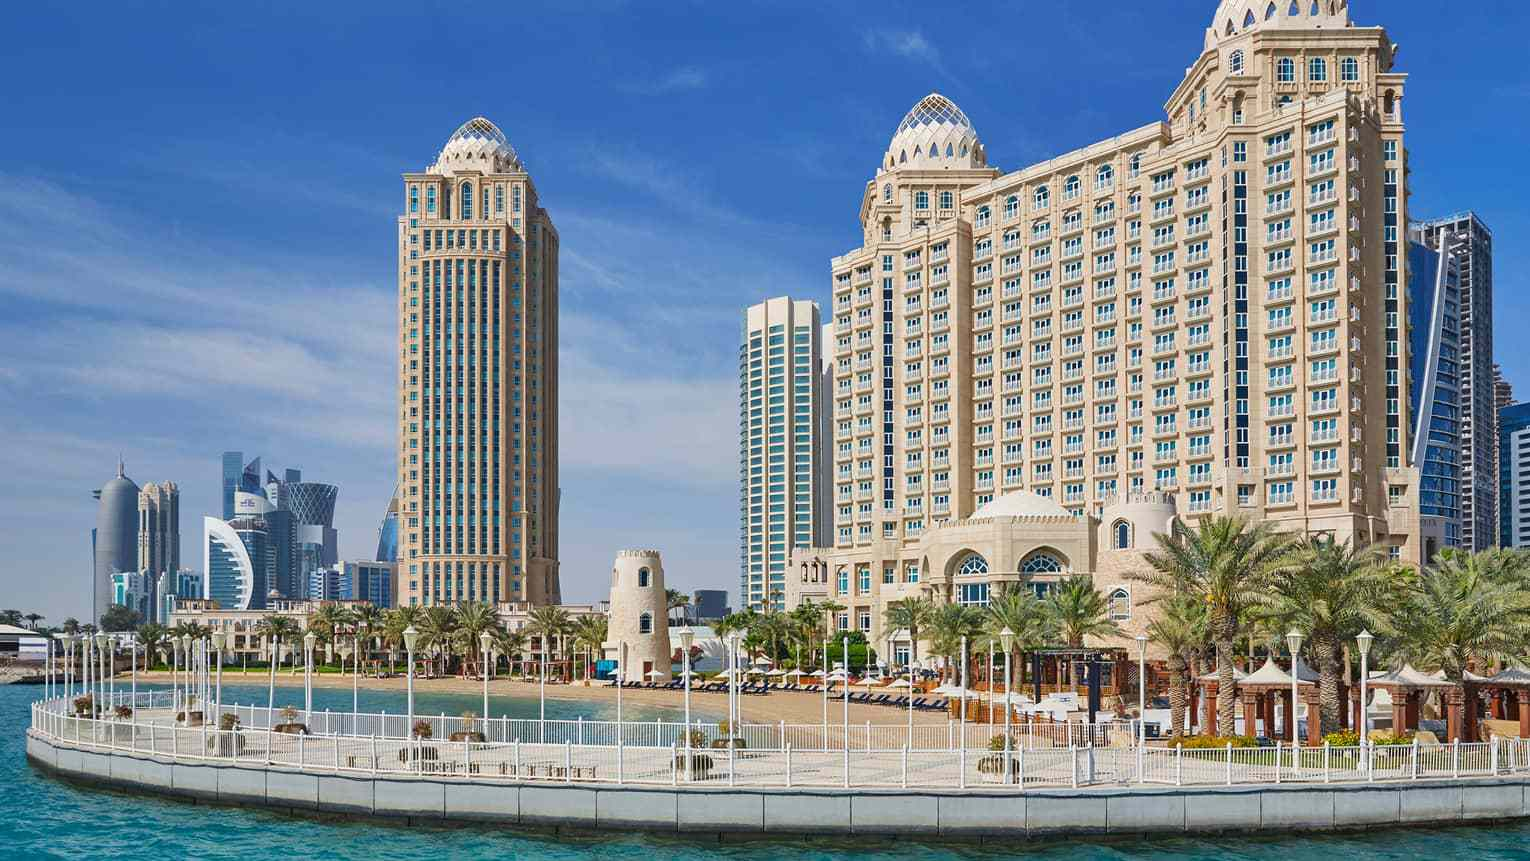 The Four Season Doha Hotel photgraphed from the water with views of the beach and shoreline palm trees